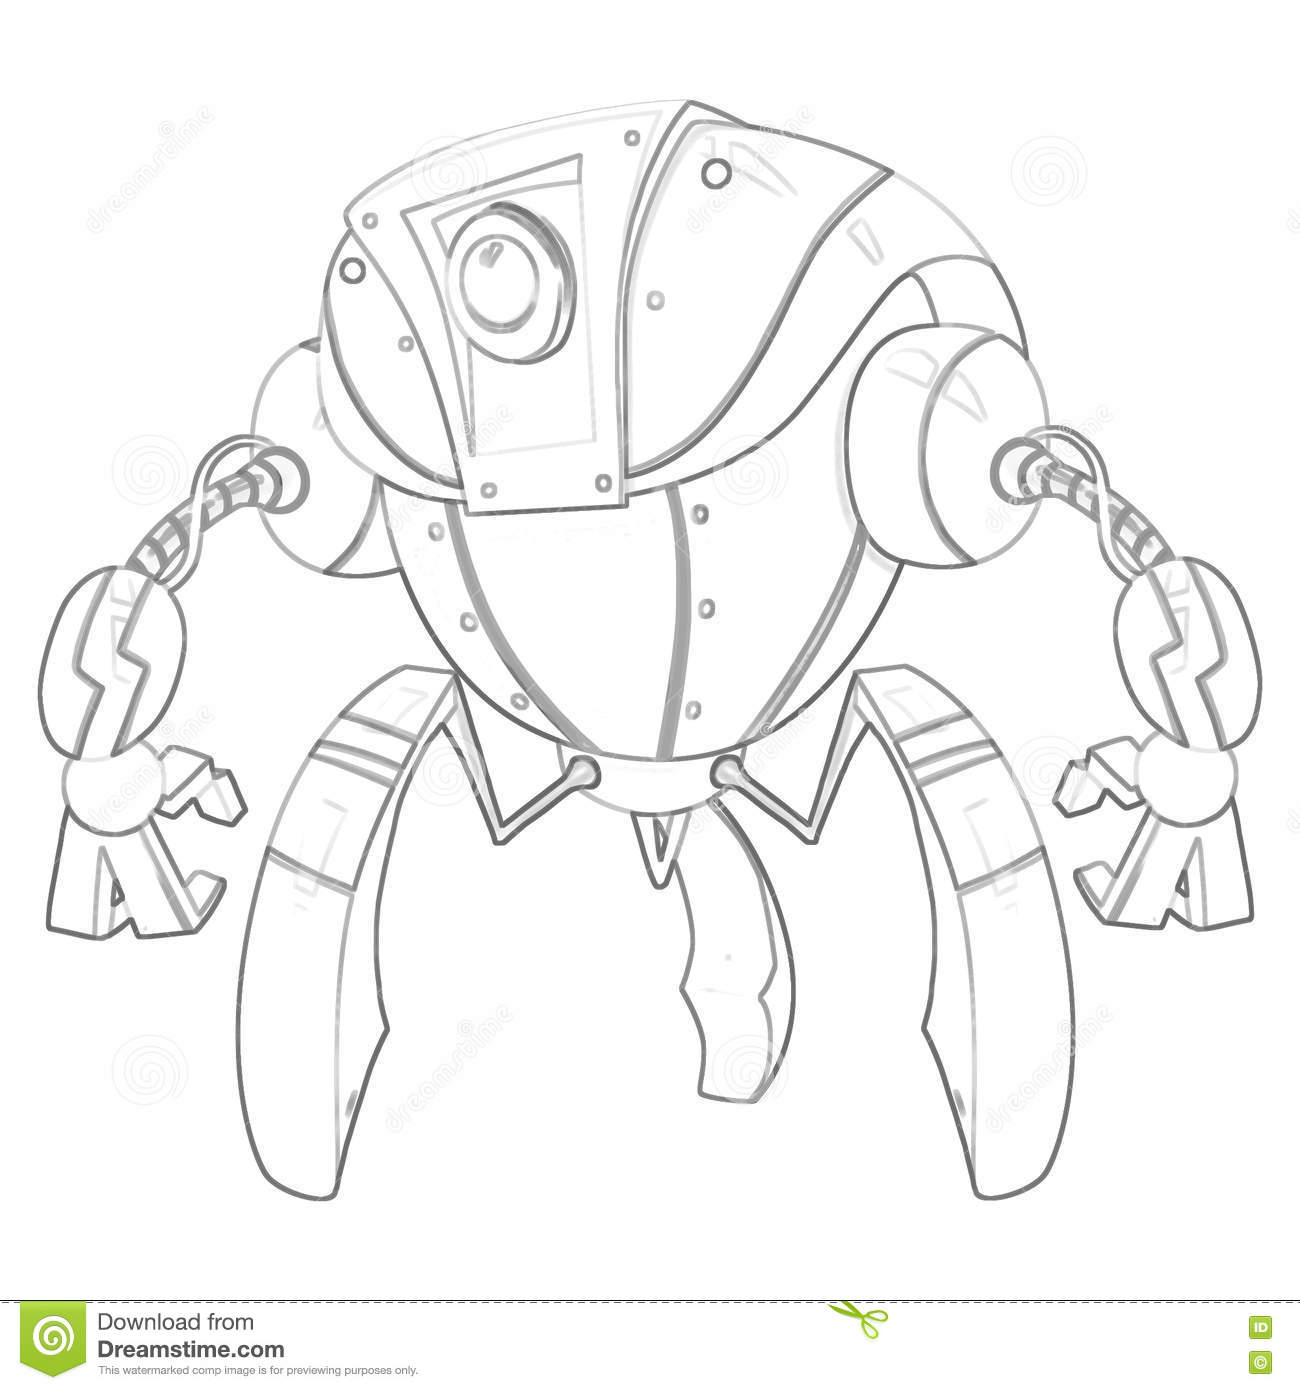 Illustration Coloring Book Series Robot Soft Thin Line Stock